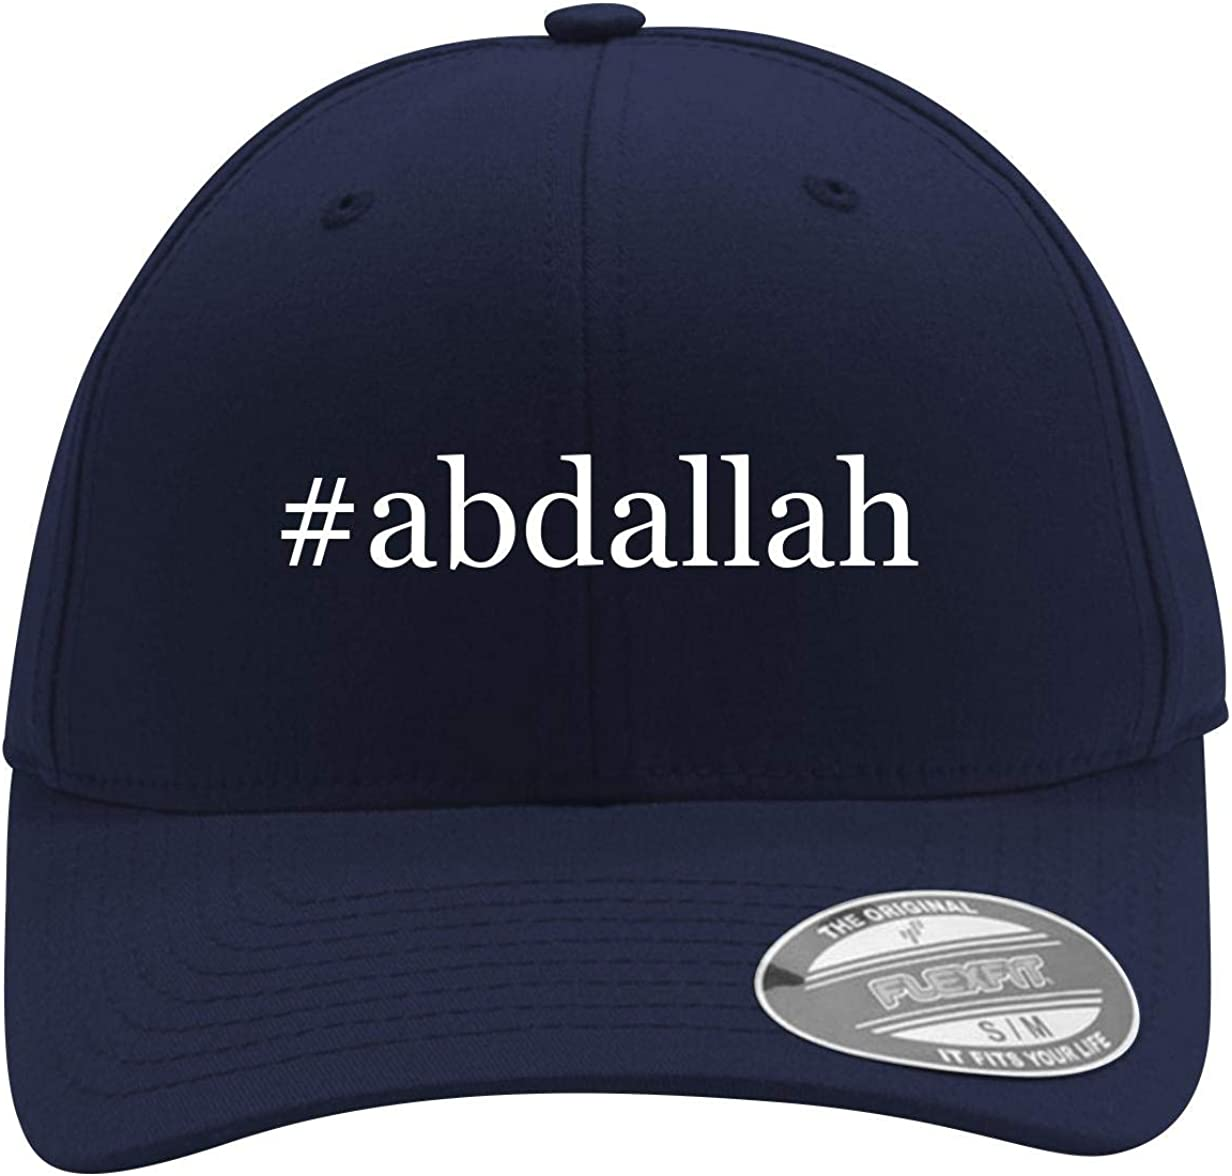 #Abdallah - Men'S Hashtag Flexfit Baseball Cap Hat